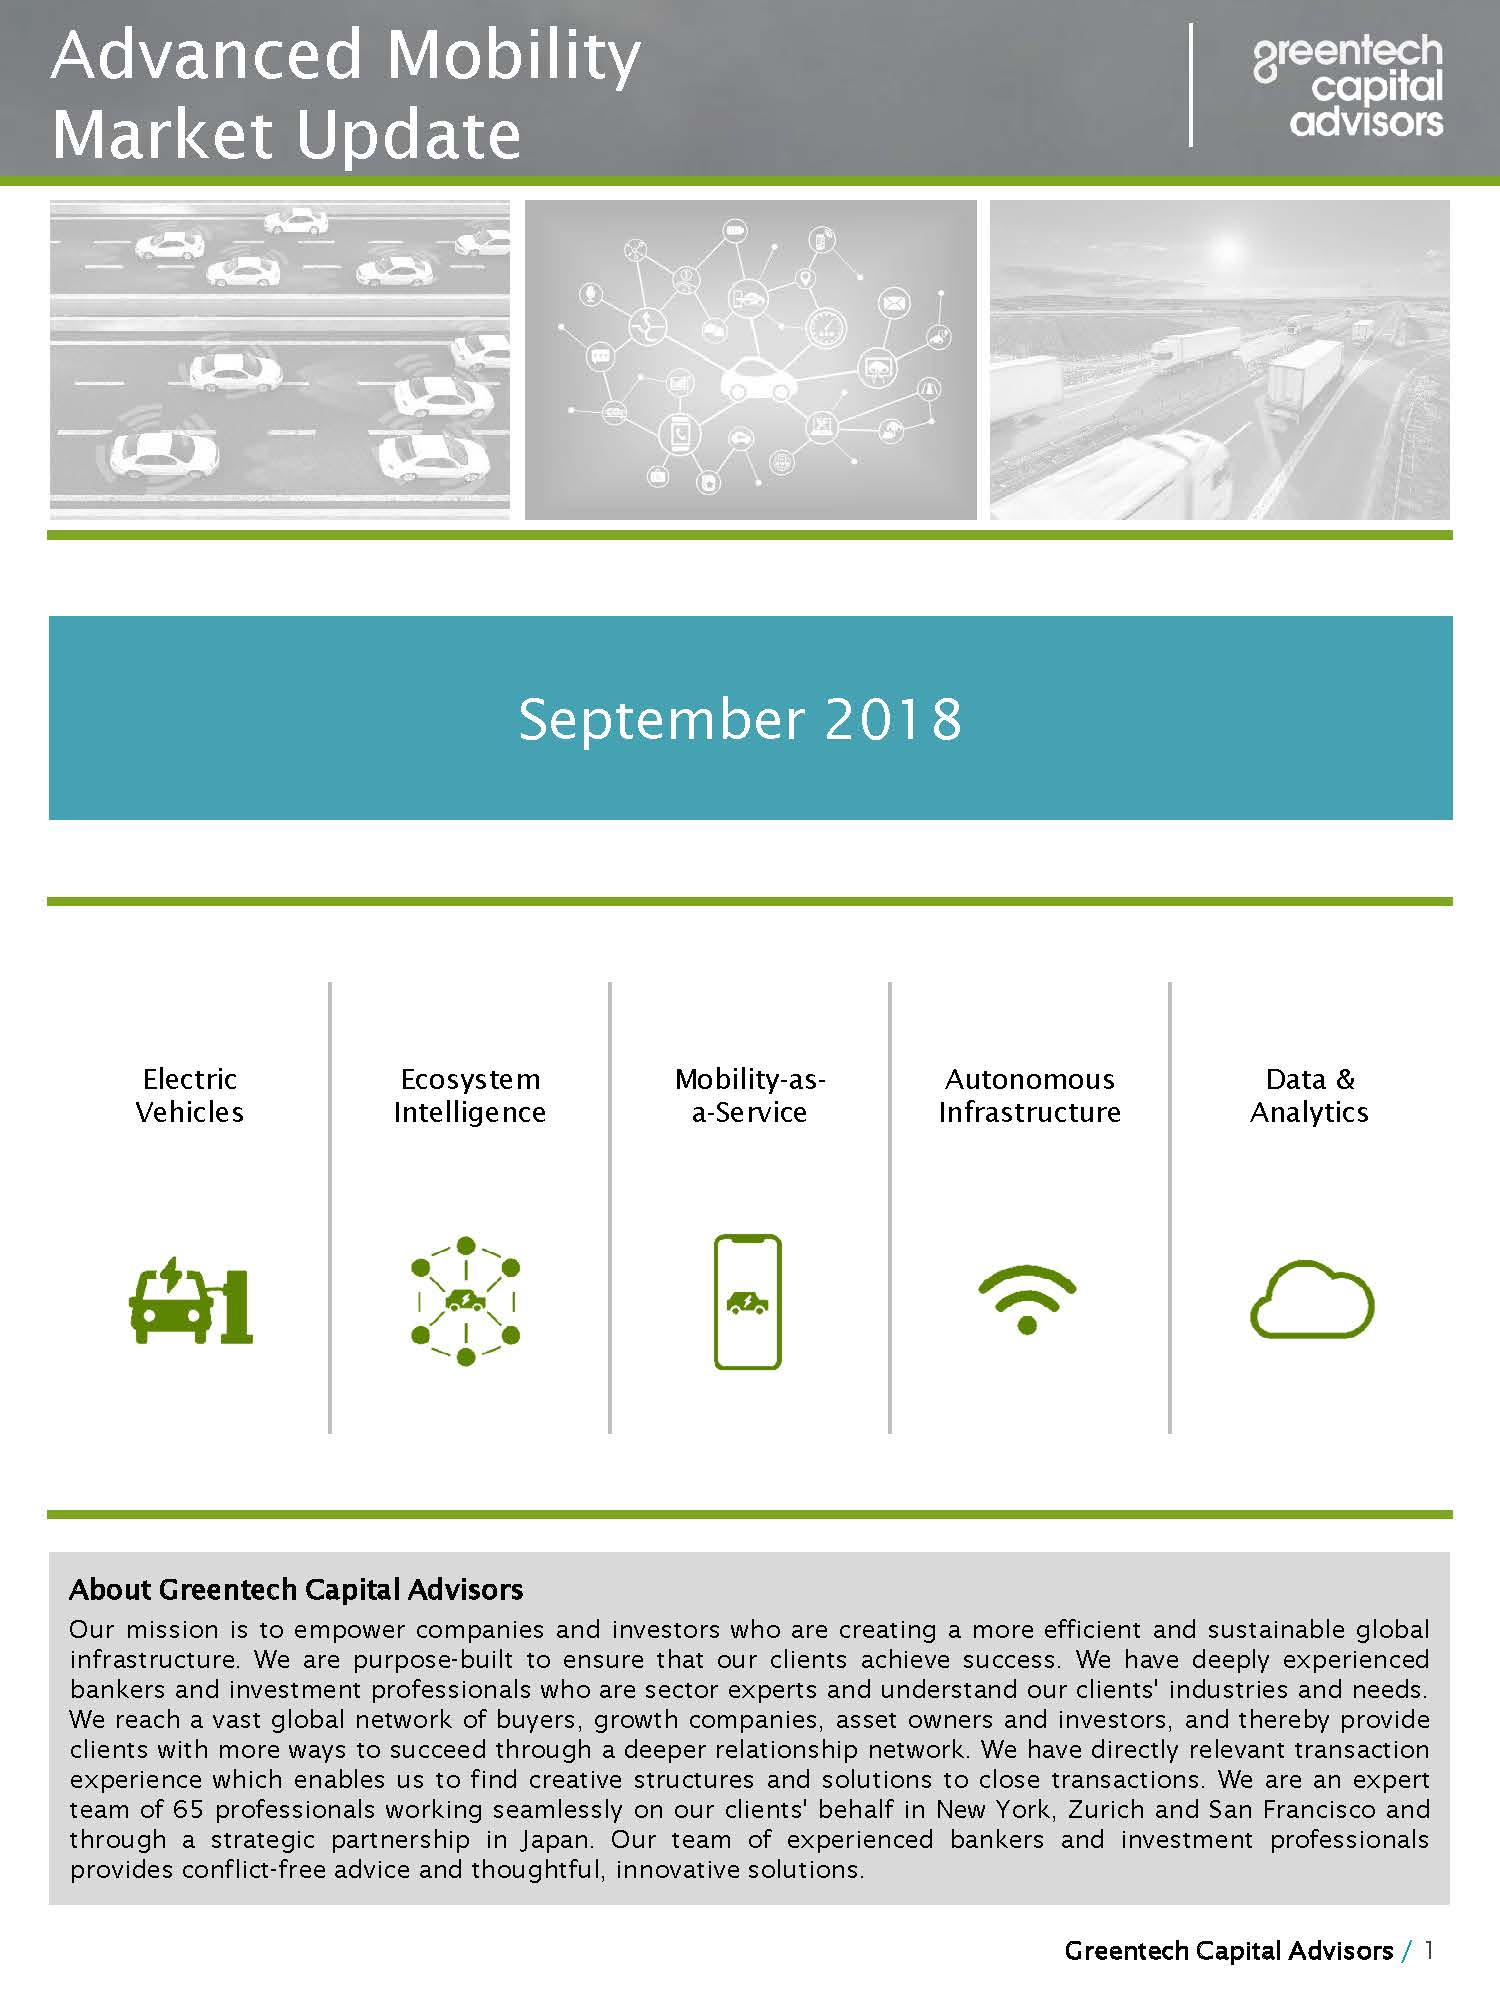 Advanced Mobility Market Update - July 2018